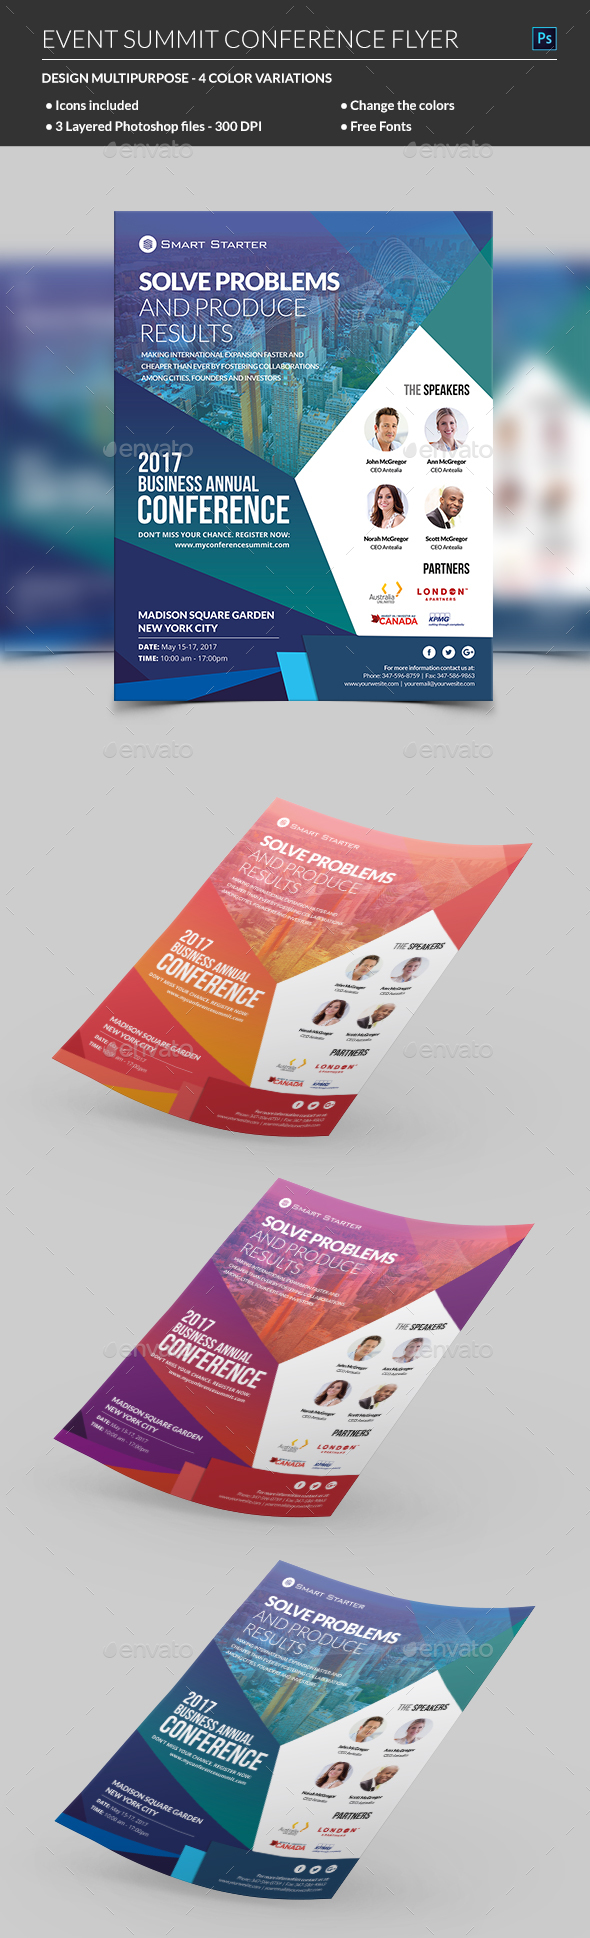 Seminar Graphics, Designs & Templates from GraphicRiver